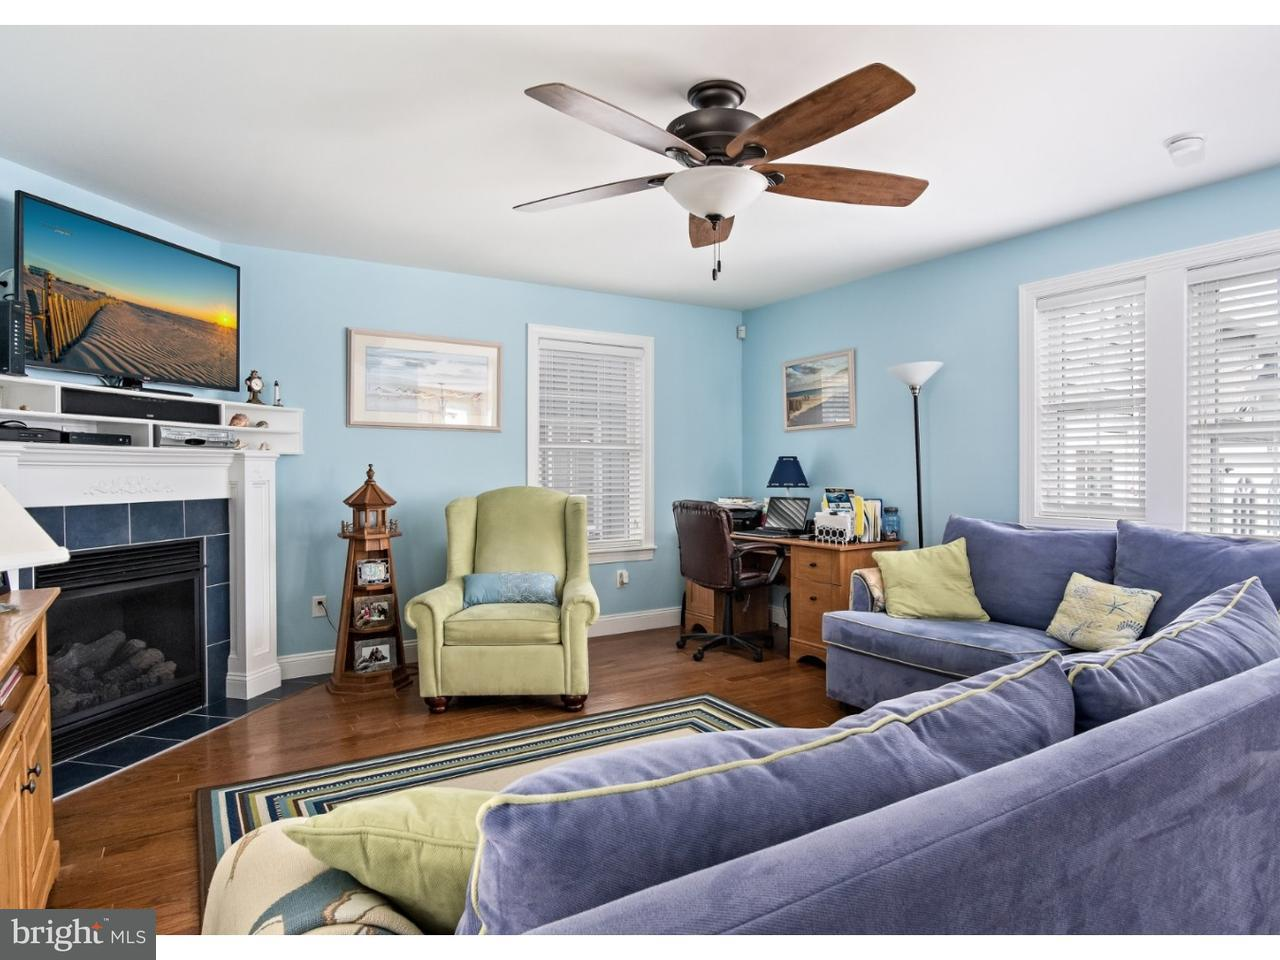 Townhouse for Sale at 504 E 13TH AVE #C North Wildwood, New Jersey 08260 United States